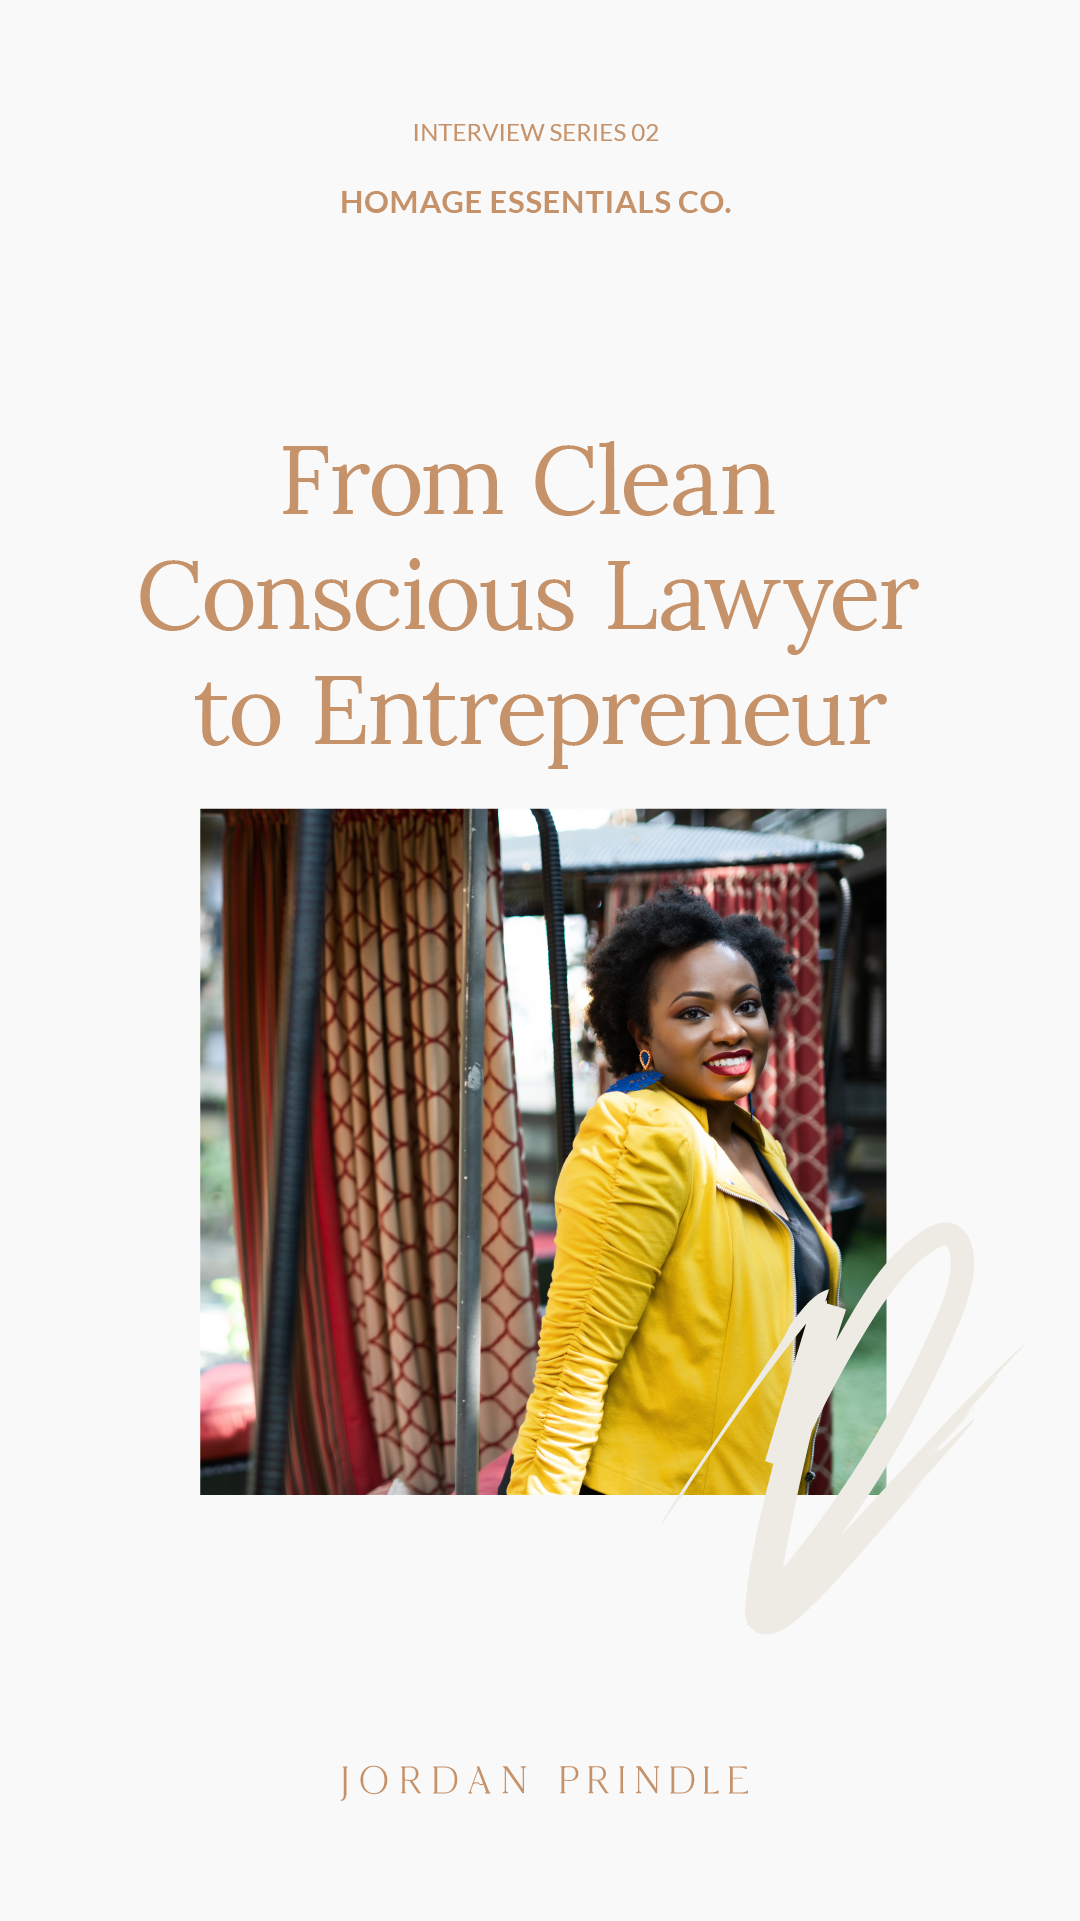 From Lawyer to Entrepreneur | I got to interview a non-toxic home cleaning company about starting and growing a business. Read it at www.jordanprindledesigns.com #smallbusiness #businessinterview #nontoxicbusiness